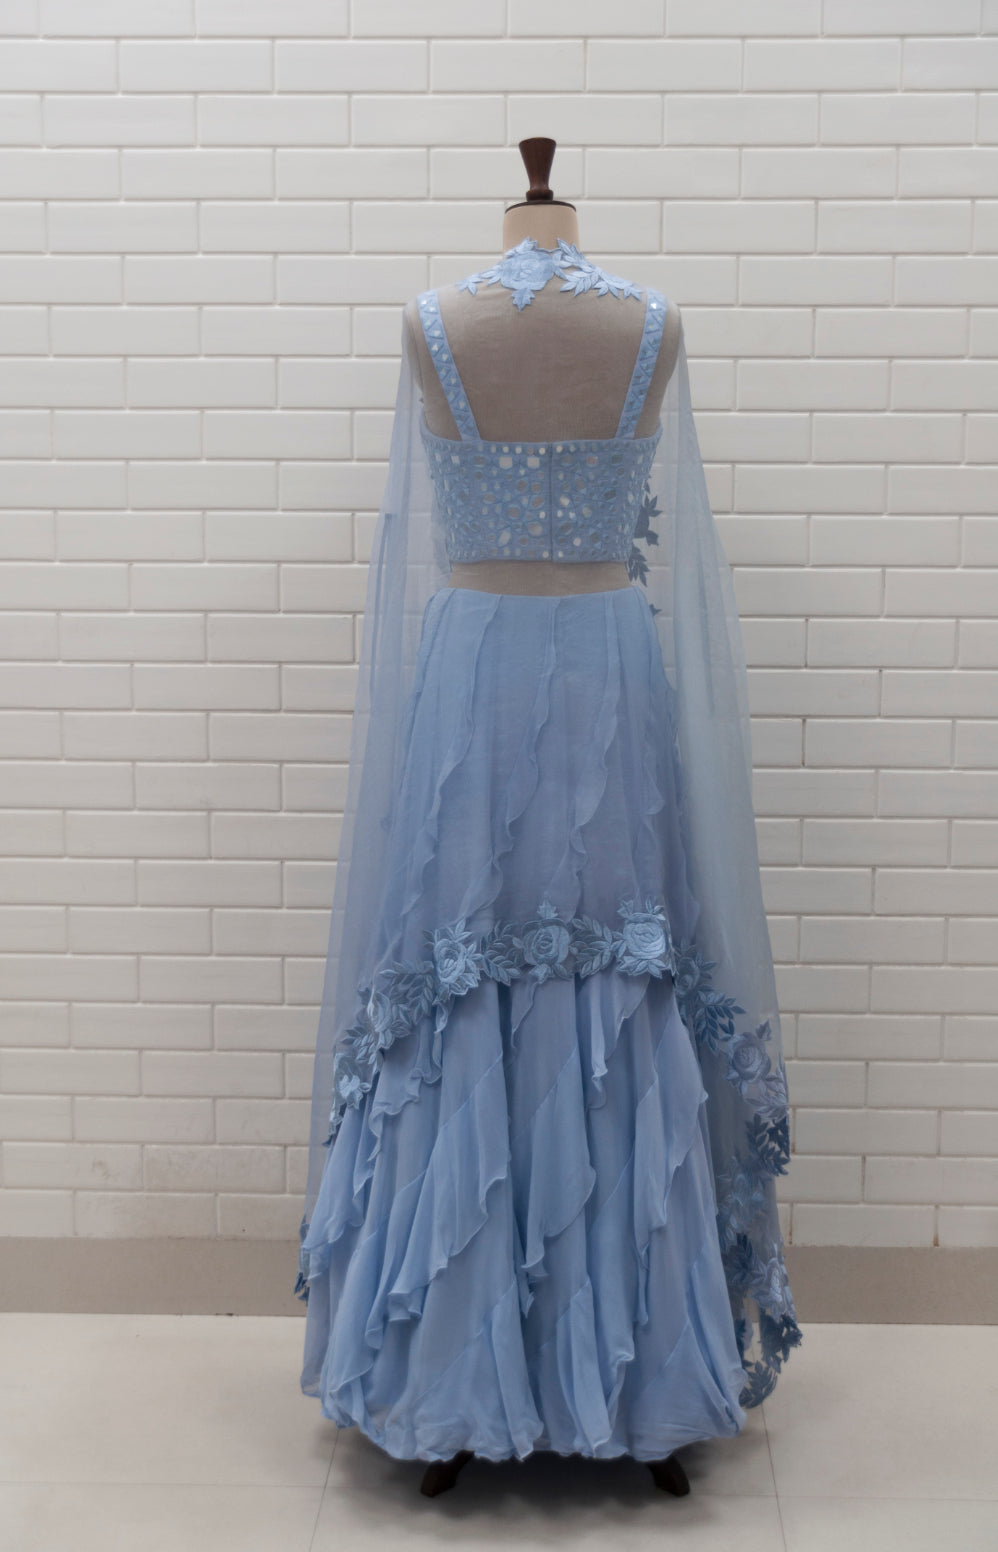 CHLORIS - Ice Blue Mirror Hand-embroidered Corset & Ruffle Lehenga